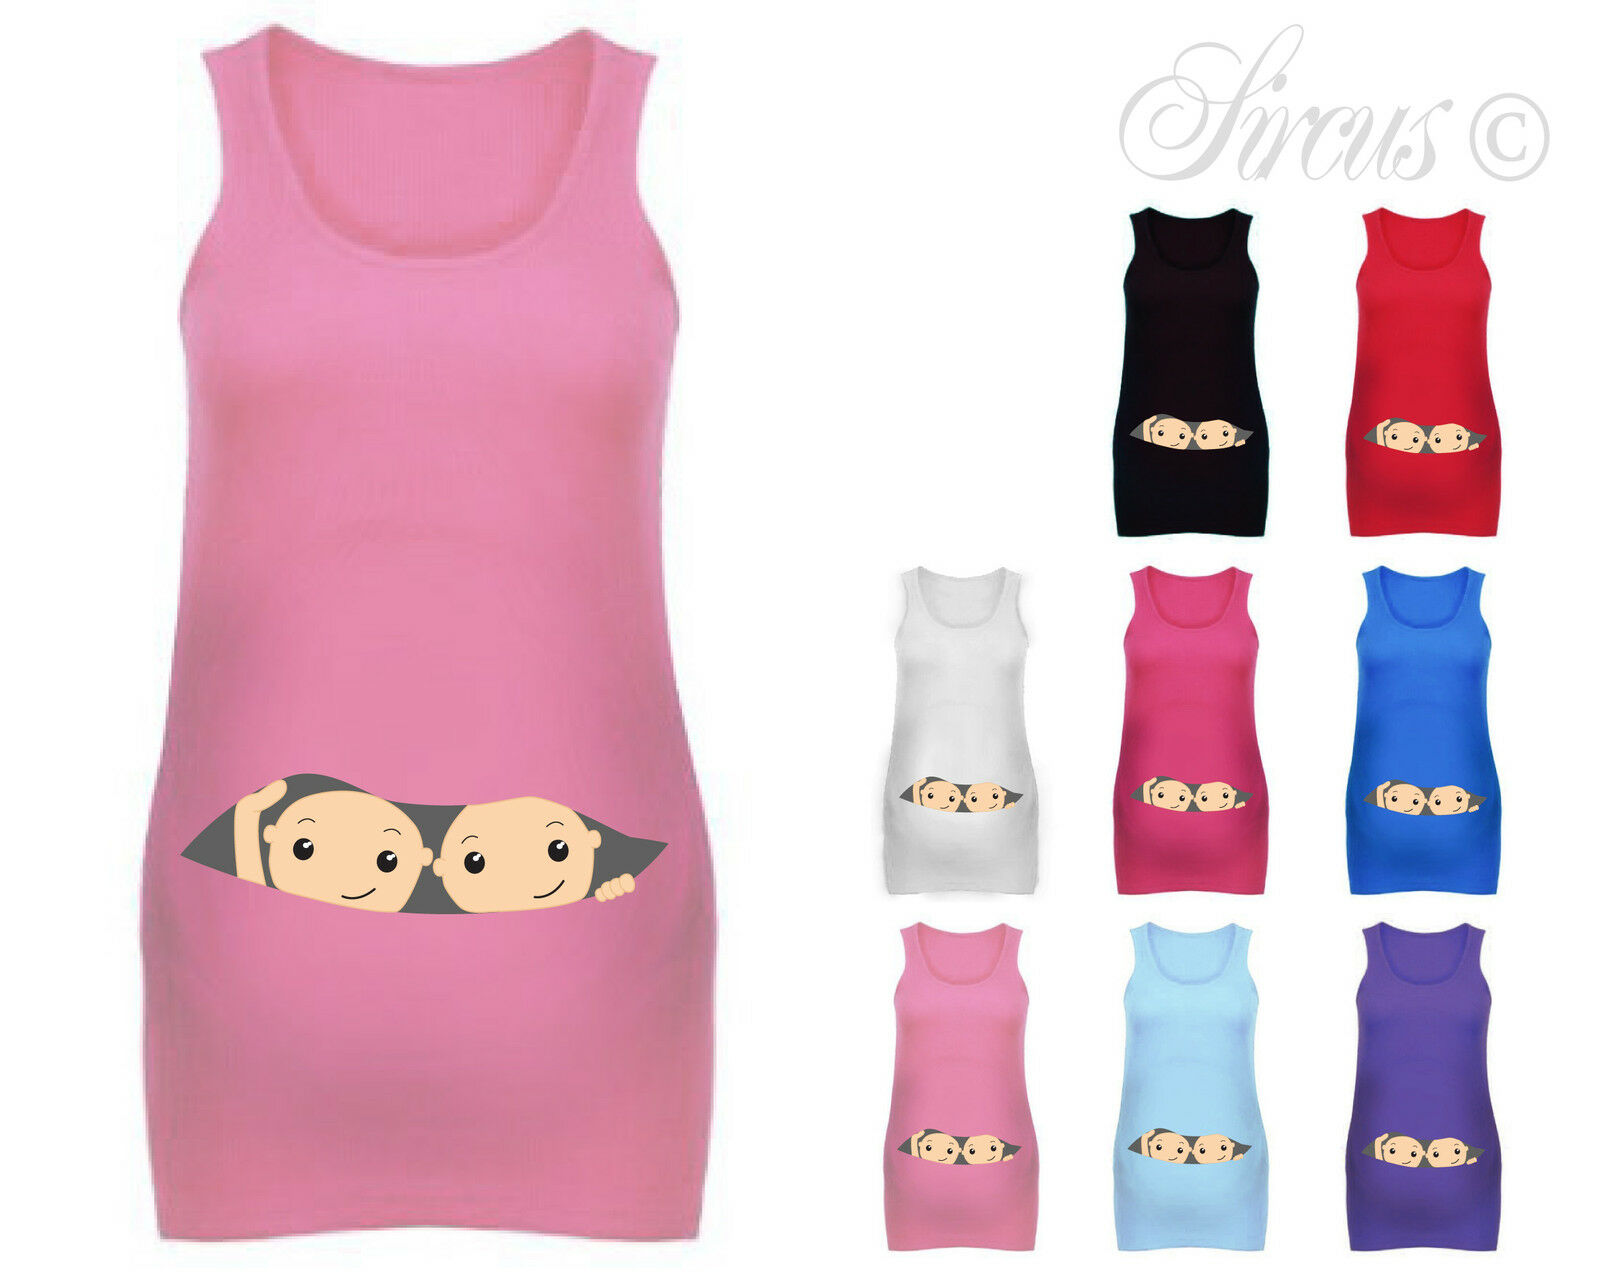 Details about WOMENS PEEKING BABY TWINS MATERNITY VEST PREGNANCY TANK TOP  BABY SHOWER GIFT 139f8ca5b375